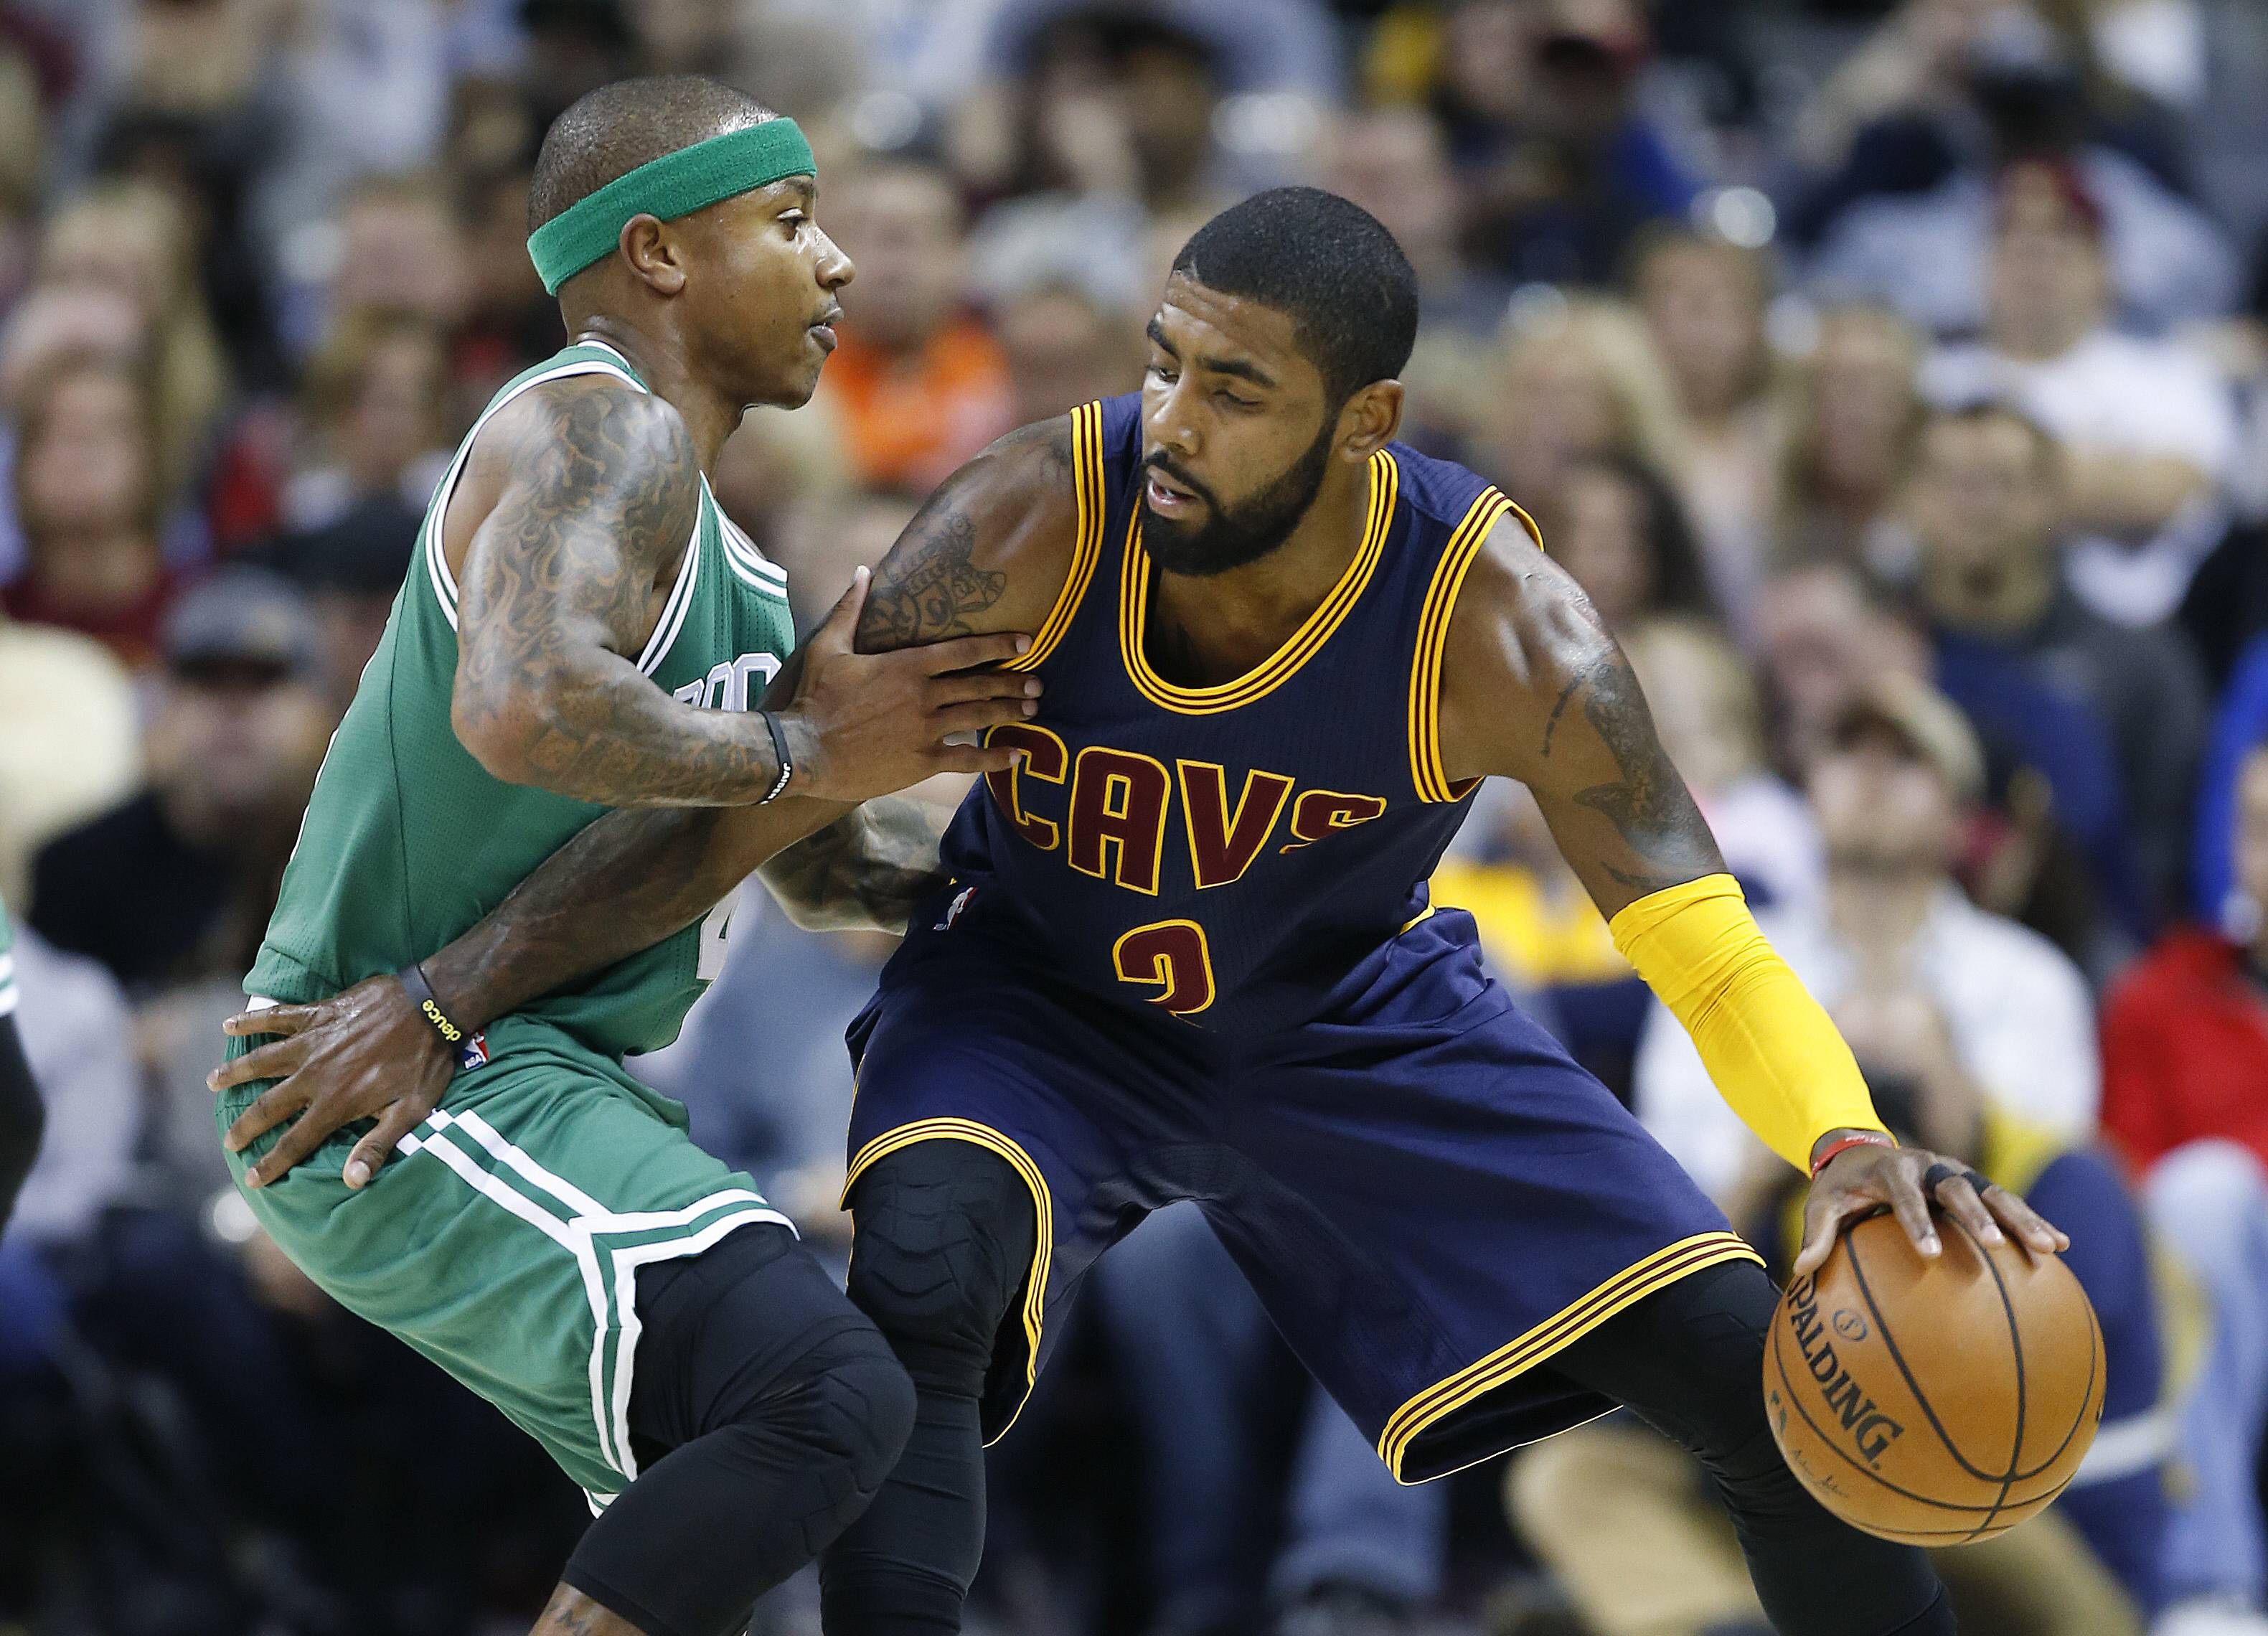 Kyrie Irving's next cross-over will come against the Cavaliers. Cleveland's All-Star guard, who asked owner Dan Gilbert to trade him earlier this summer, was dealt Tuesday night to the Boston Celtics in exchange for star Isaiah Thomas, forward Jae Crowder and a 2018 first-round draft pick, a person familiar with the deal told The Associated Press.